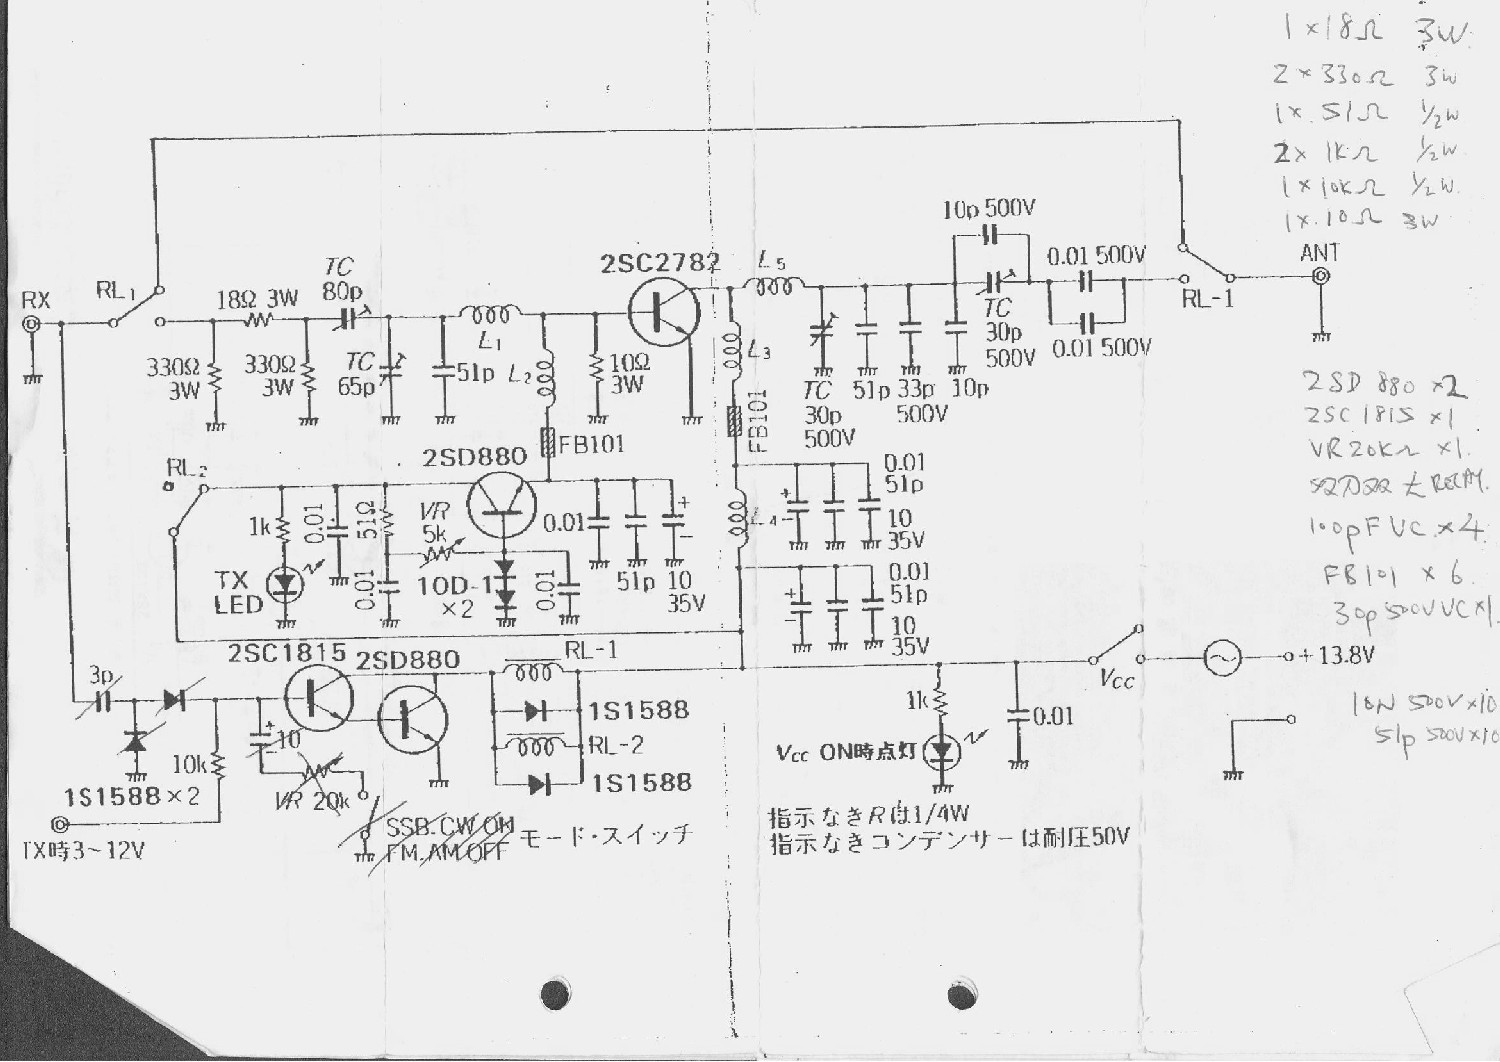 100W Transmitter RF Power Amplifier 2SC2782 - schematic